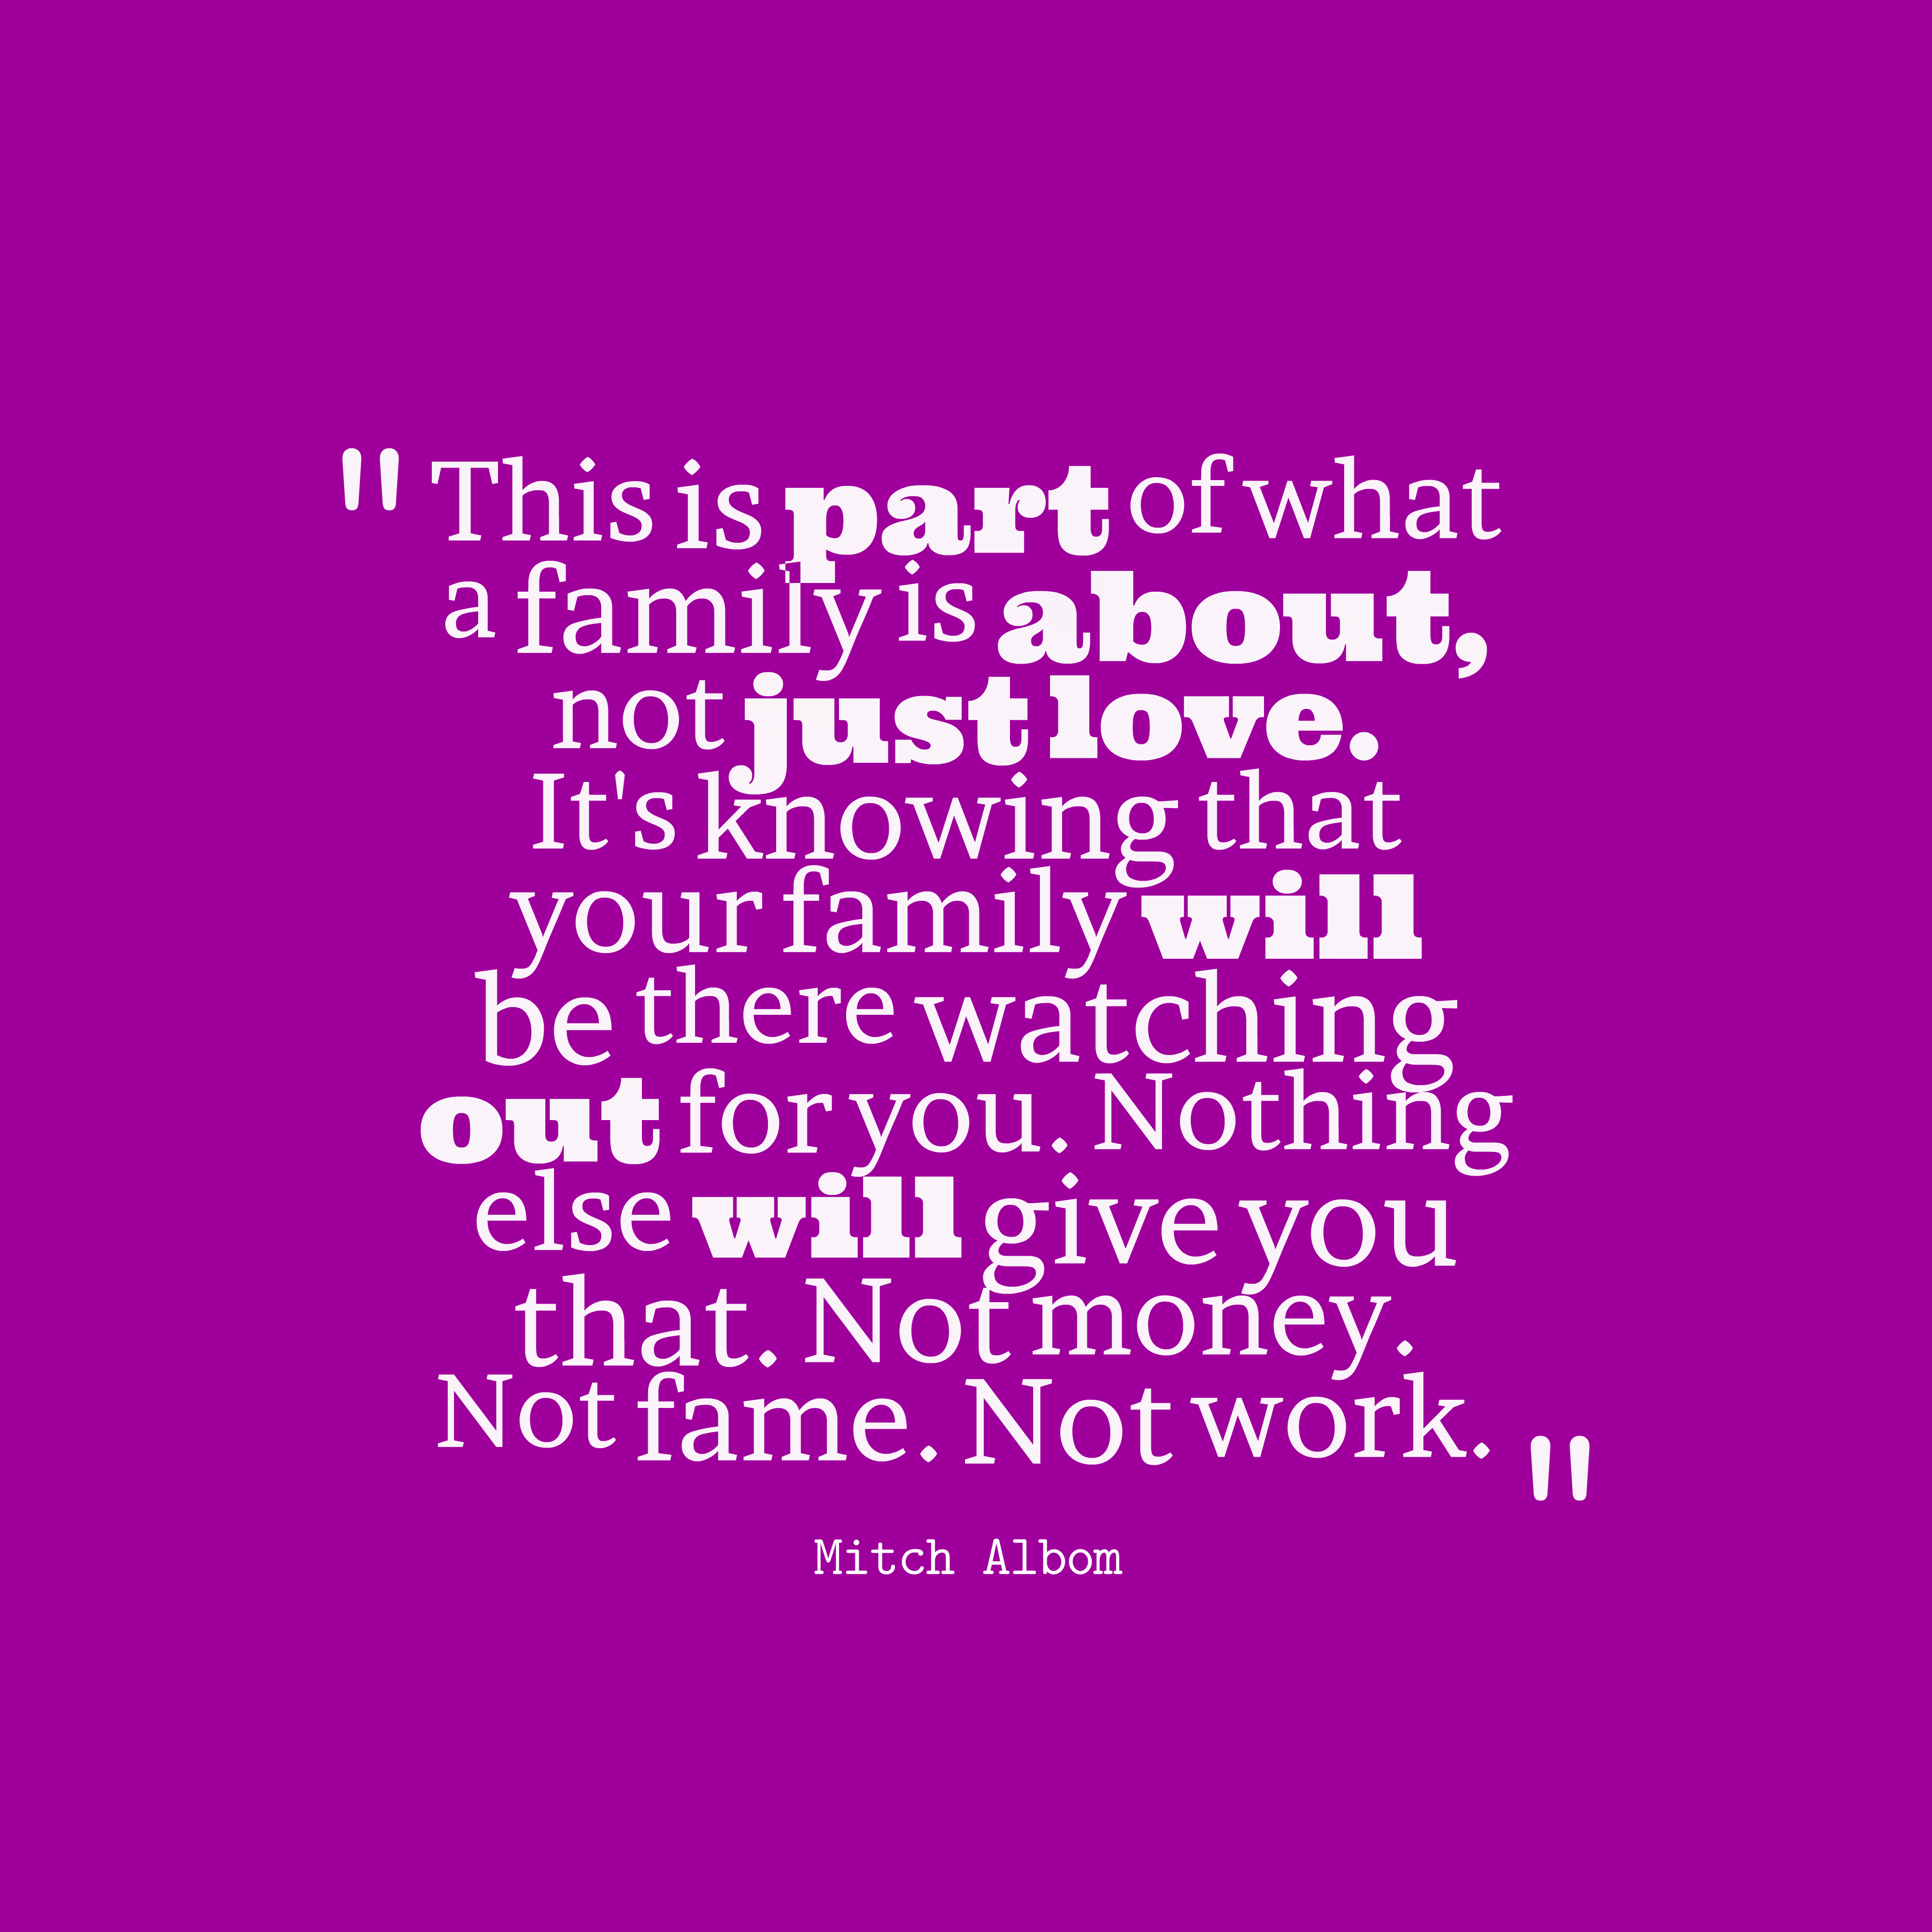 Quotes image of This is part of what a family is about, not just love. It's knowing that your family will be there watching out for you. Nothing else will give you that. Not money. Not fame. Not work.